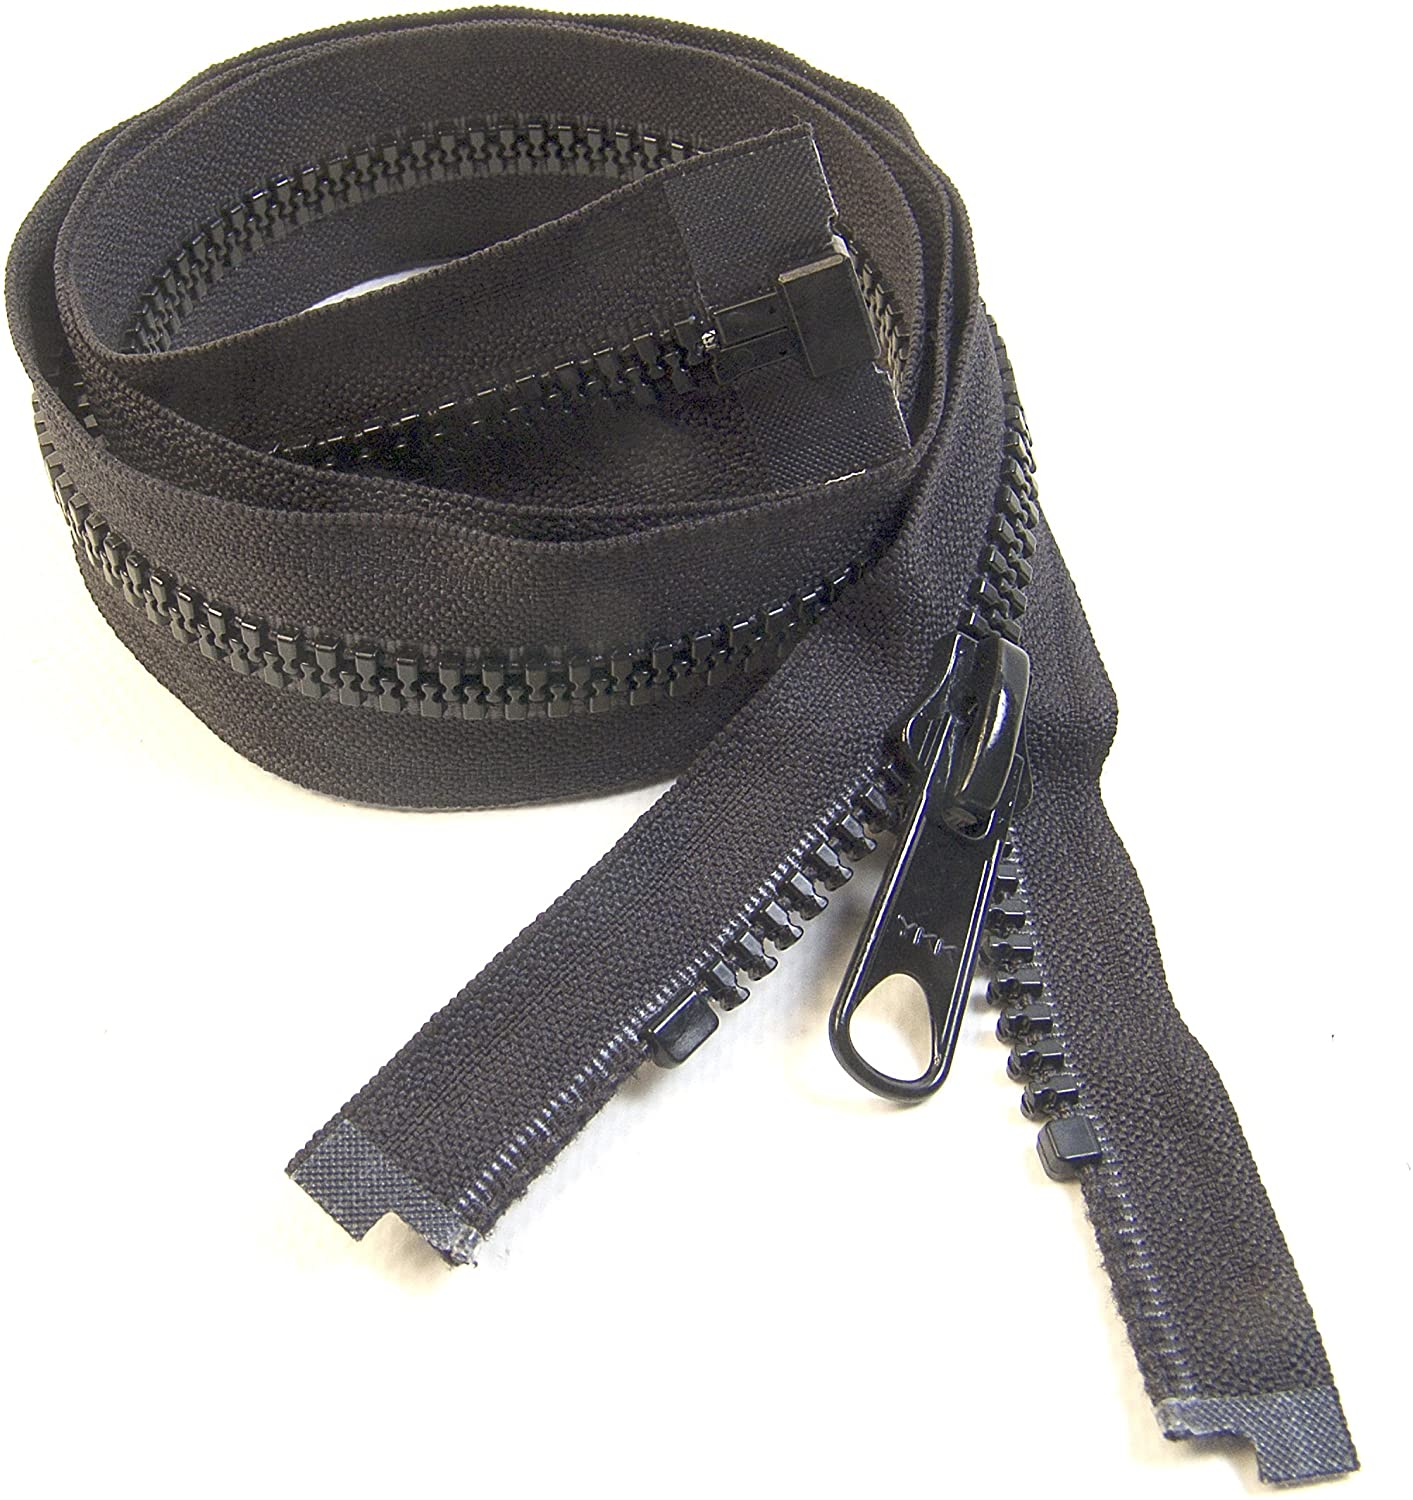 Zipper, 24 Inch, YKK, Black, #8, Seperating Zipper, Double Metal Slider, Boat Canvas